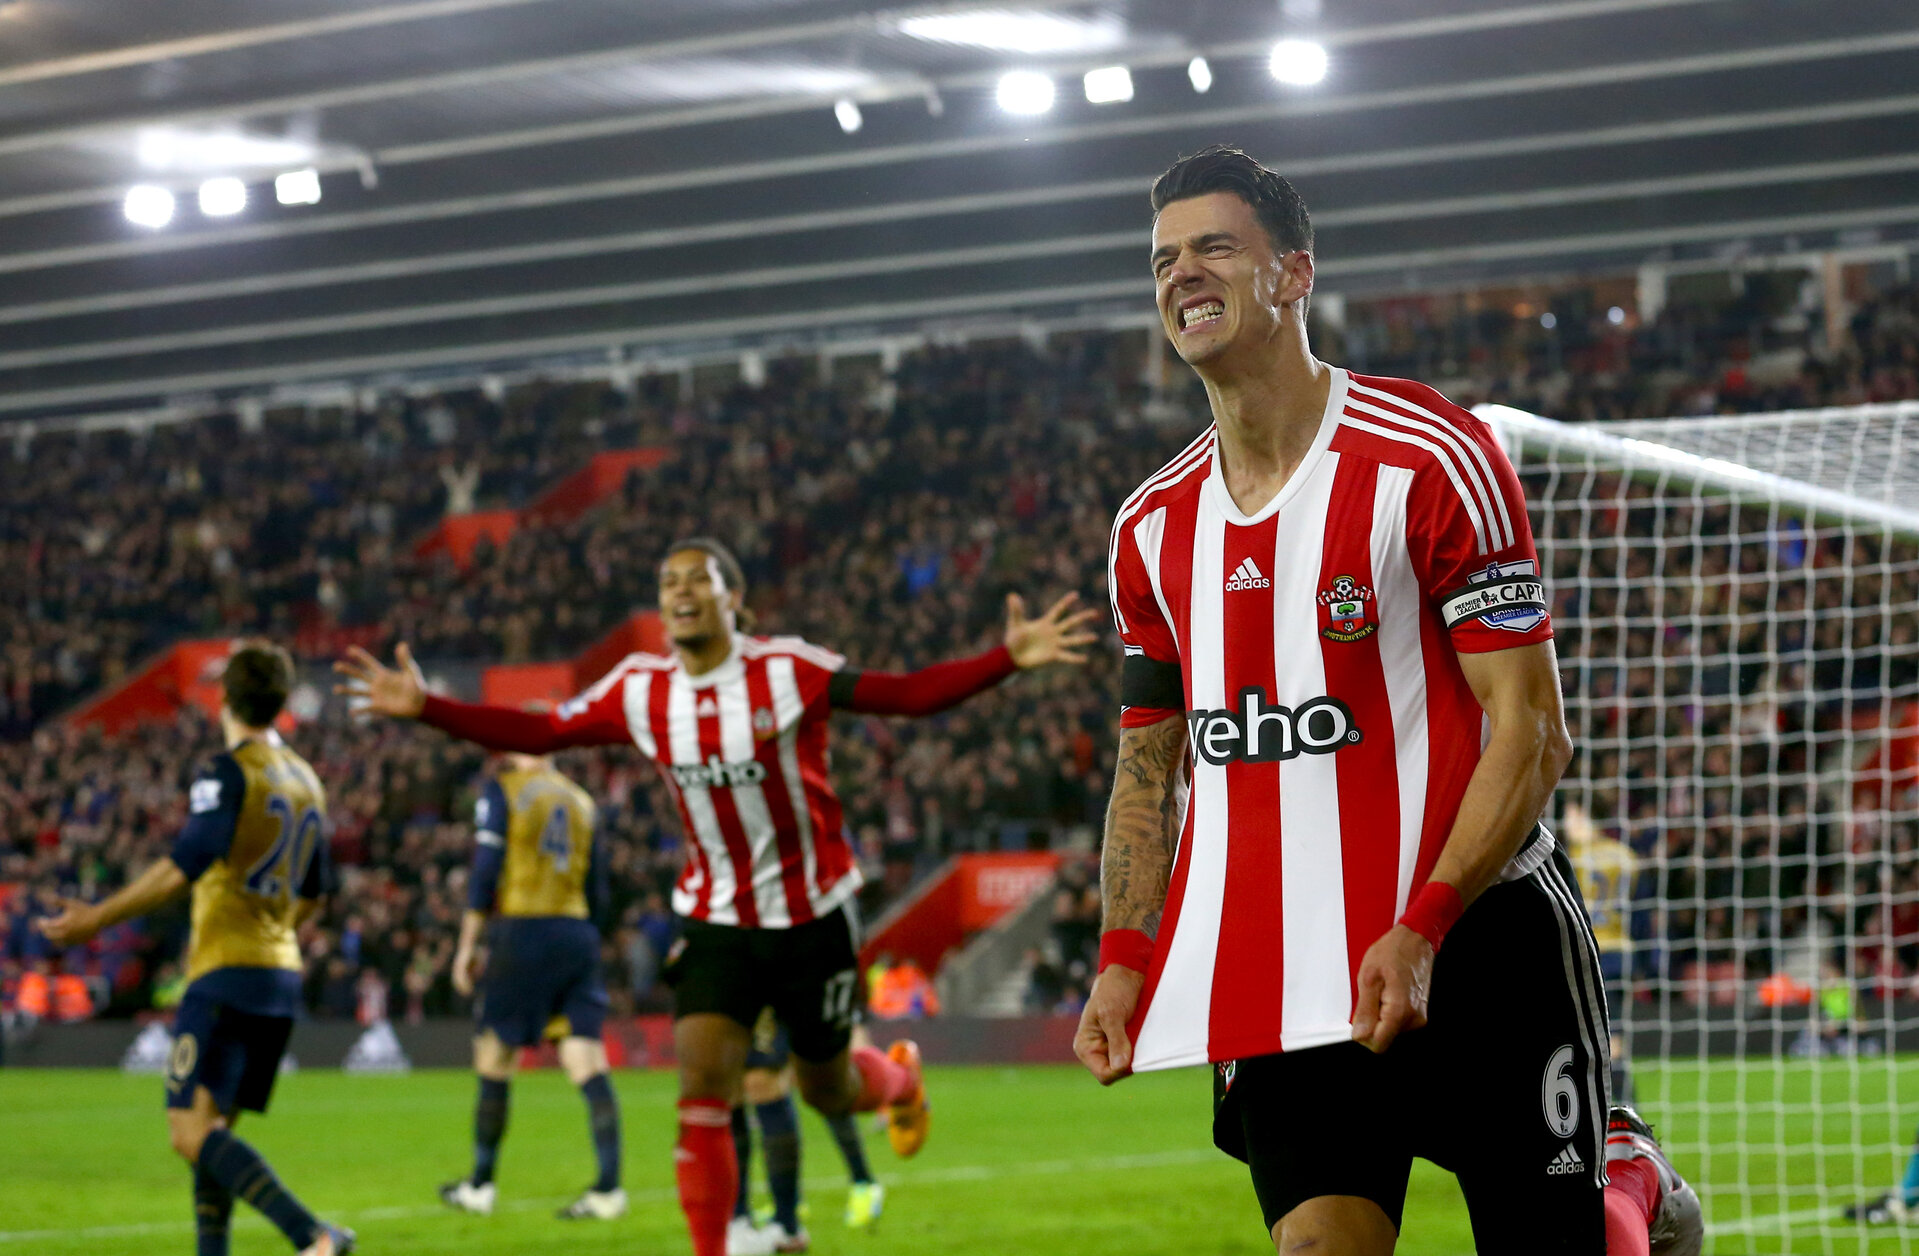 Jose Fonte celebrates during the Barclays Premier League match between Southampton and Arsenal at St Mary's Stadium, Southampton, England on 26 December 2015.